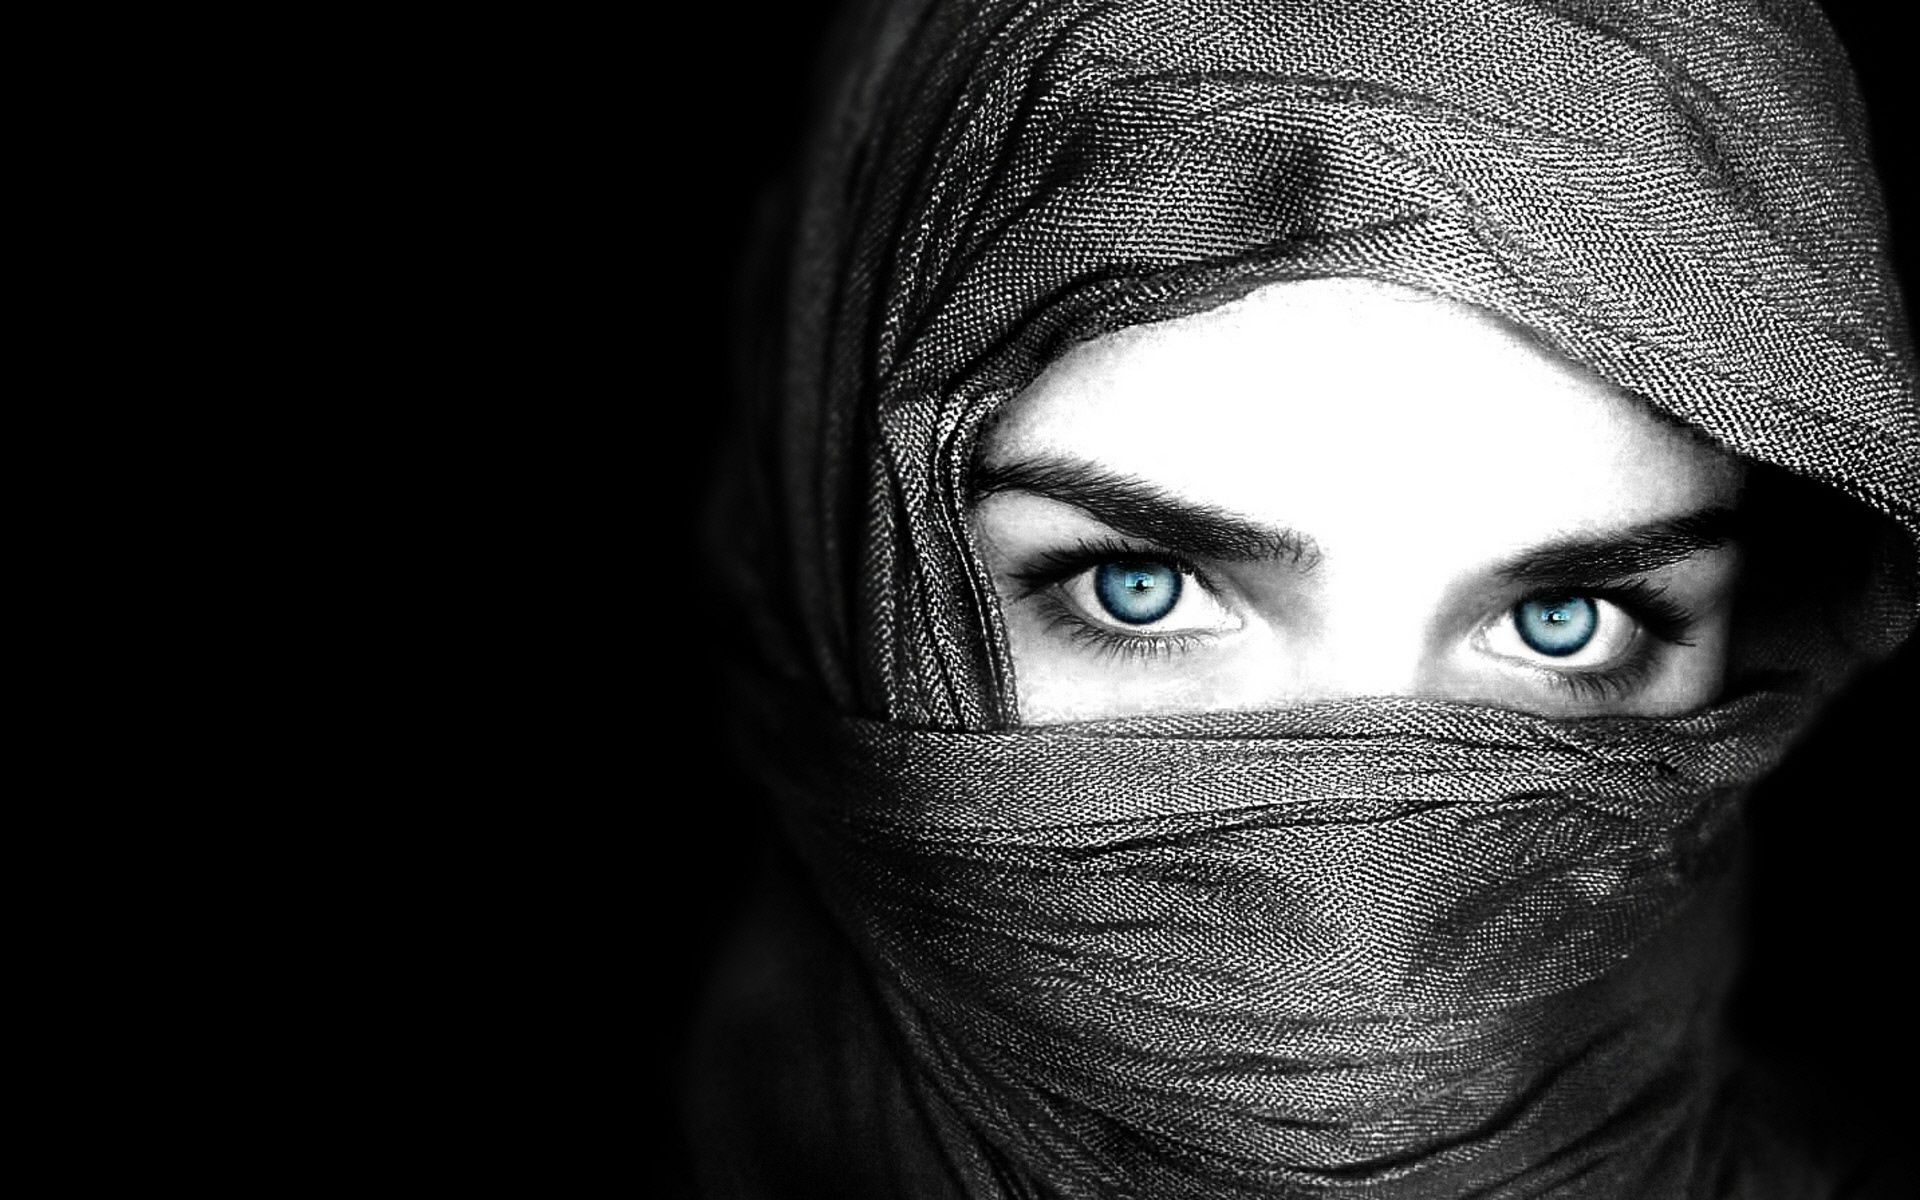 Black and white photography blue eyes covered face wallpaper and photo high resolution download